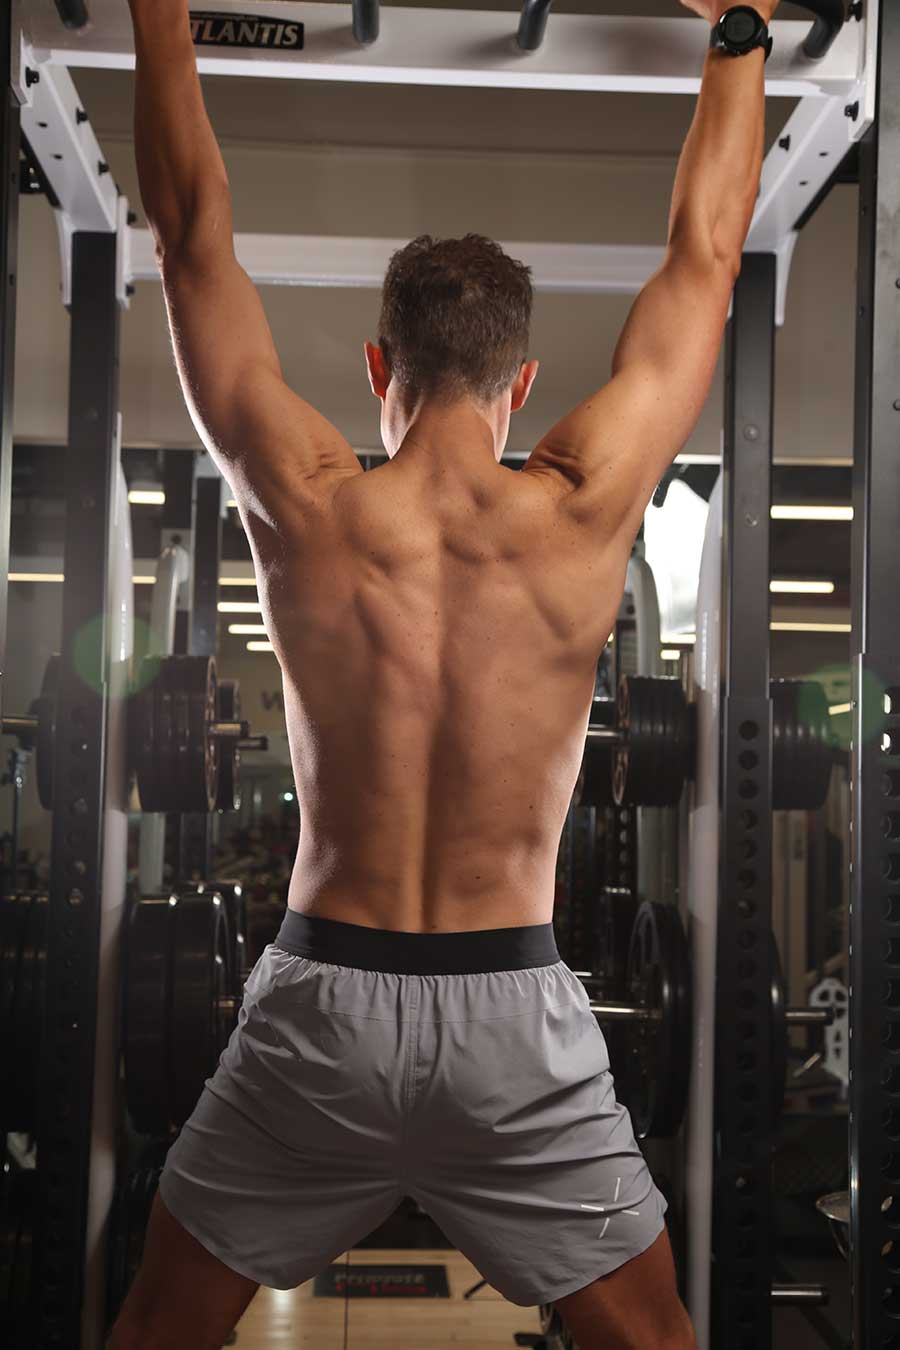 Shaun-in-the-gym-back